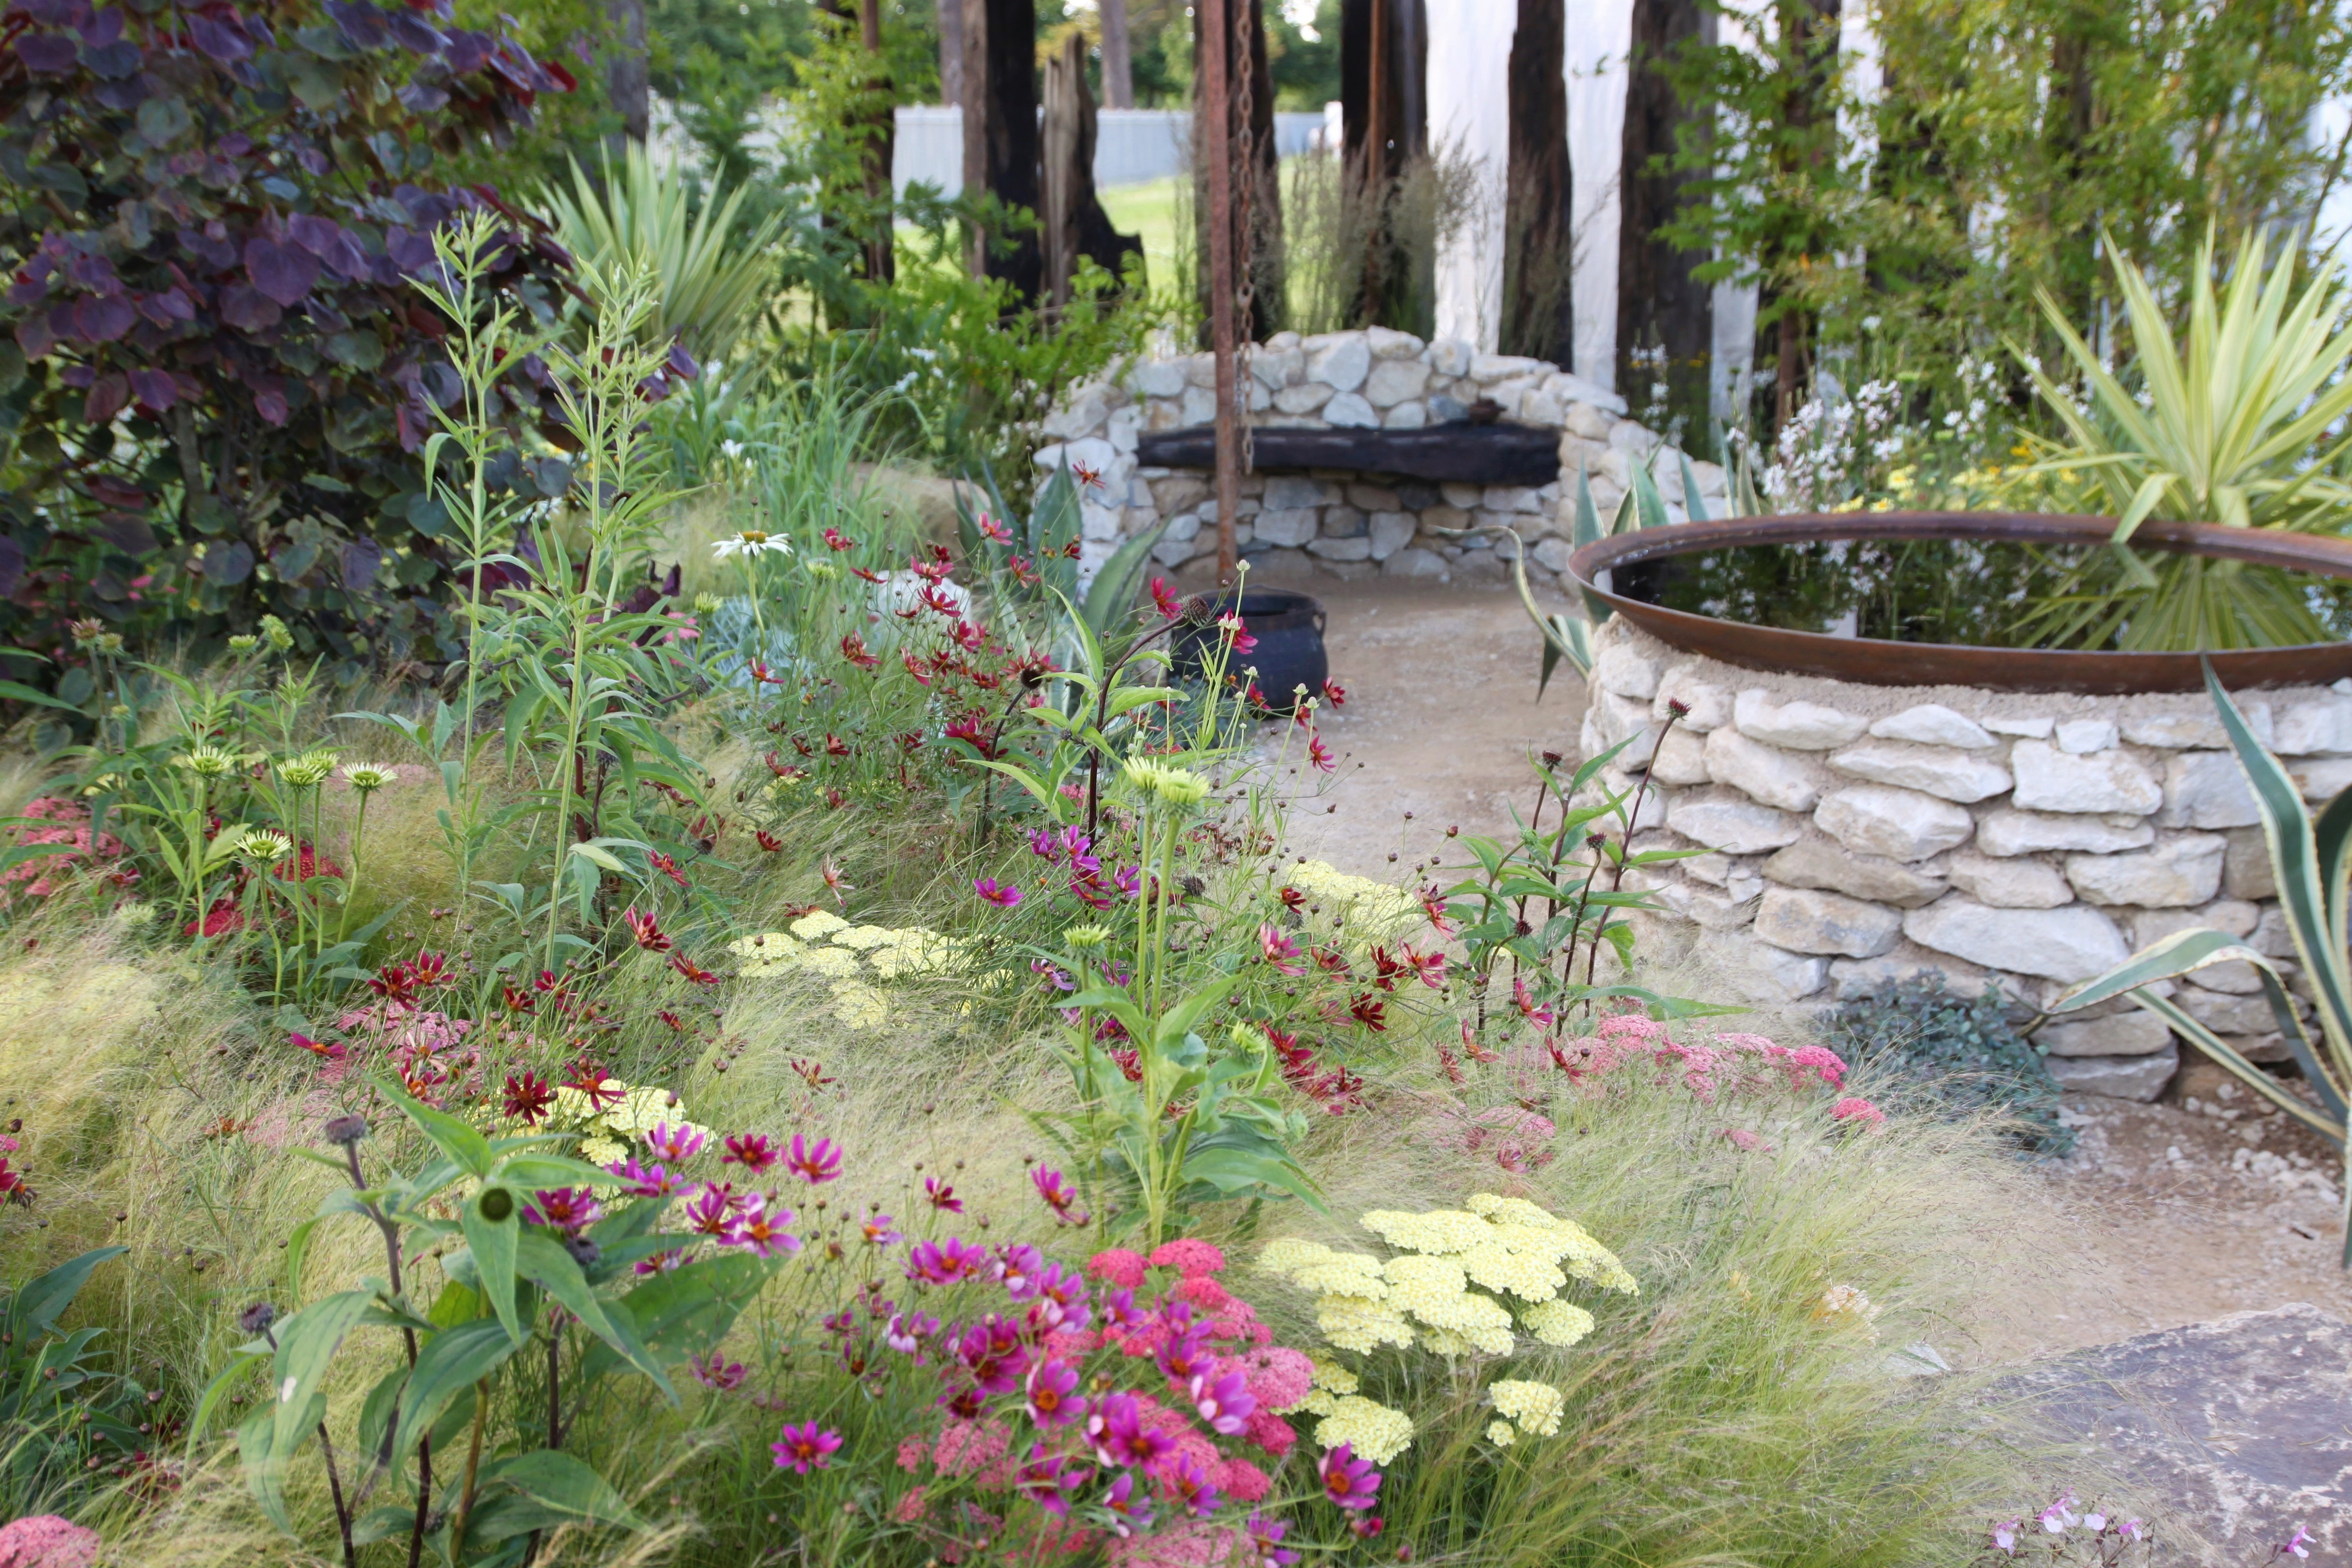 Hampton court flower show 2016 highlights shelley makes - Hampton court flower show ...